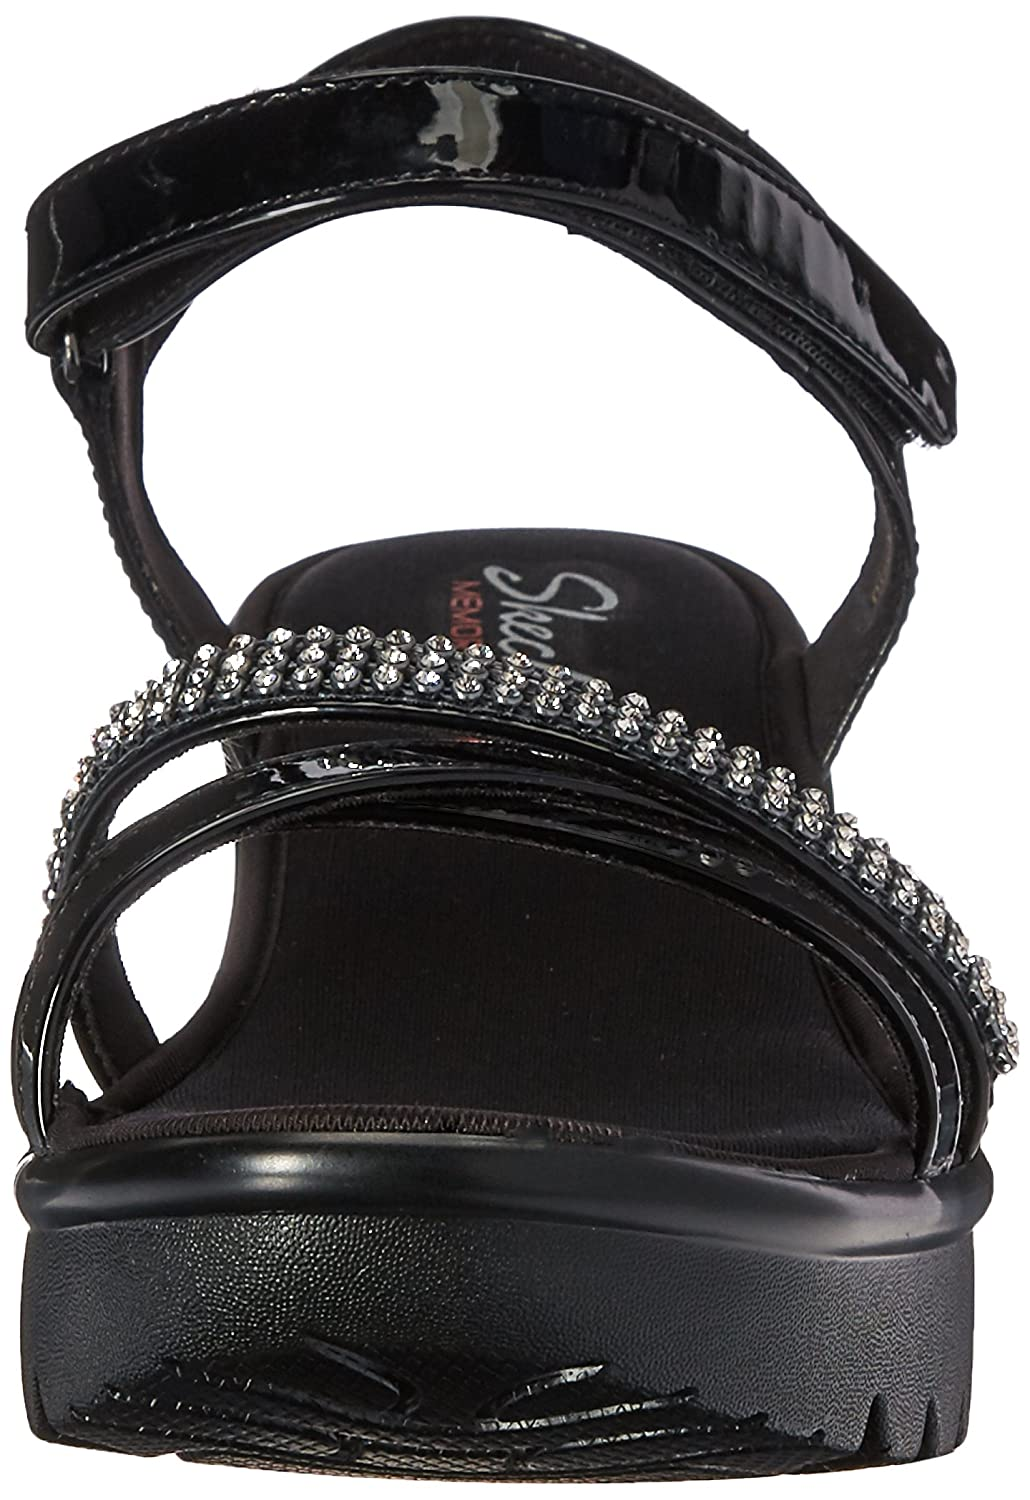 Skechers Cali Women's Concords Platform Dress Sandal Black